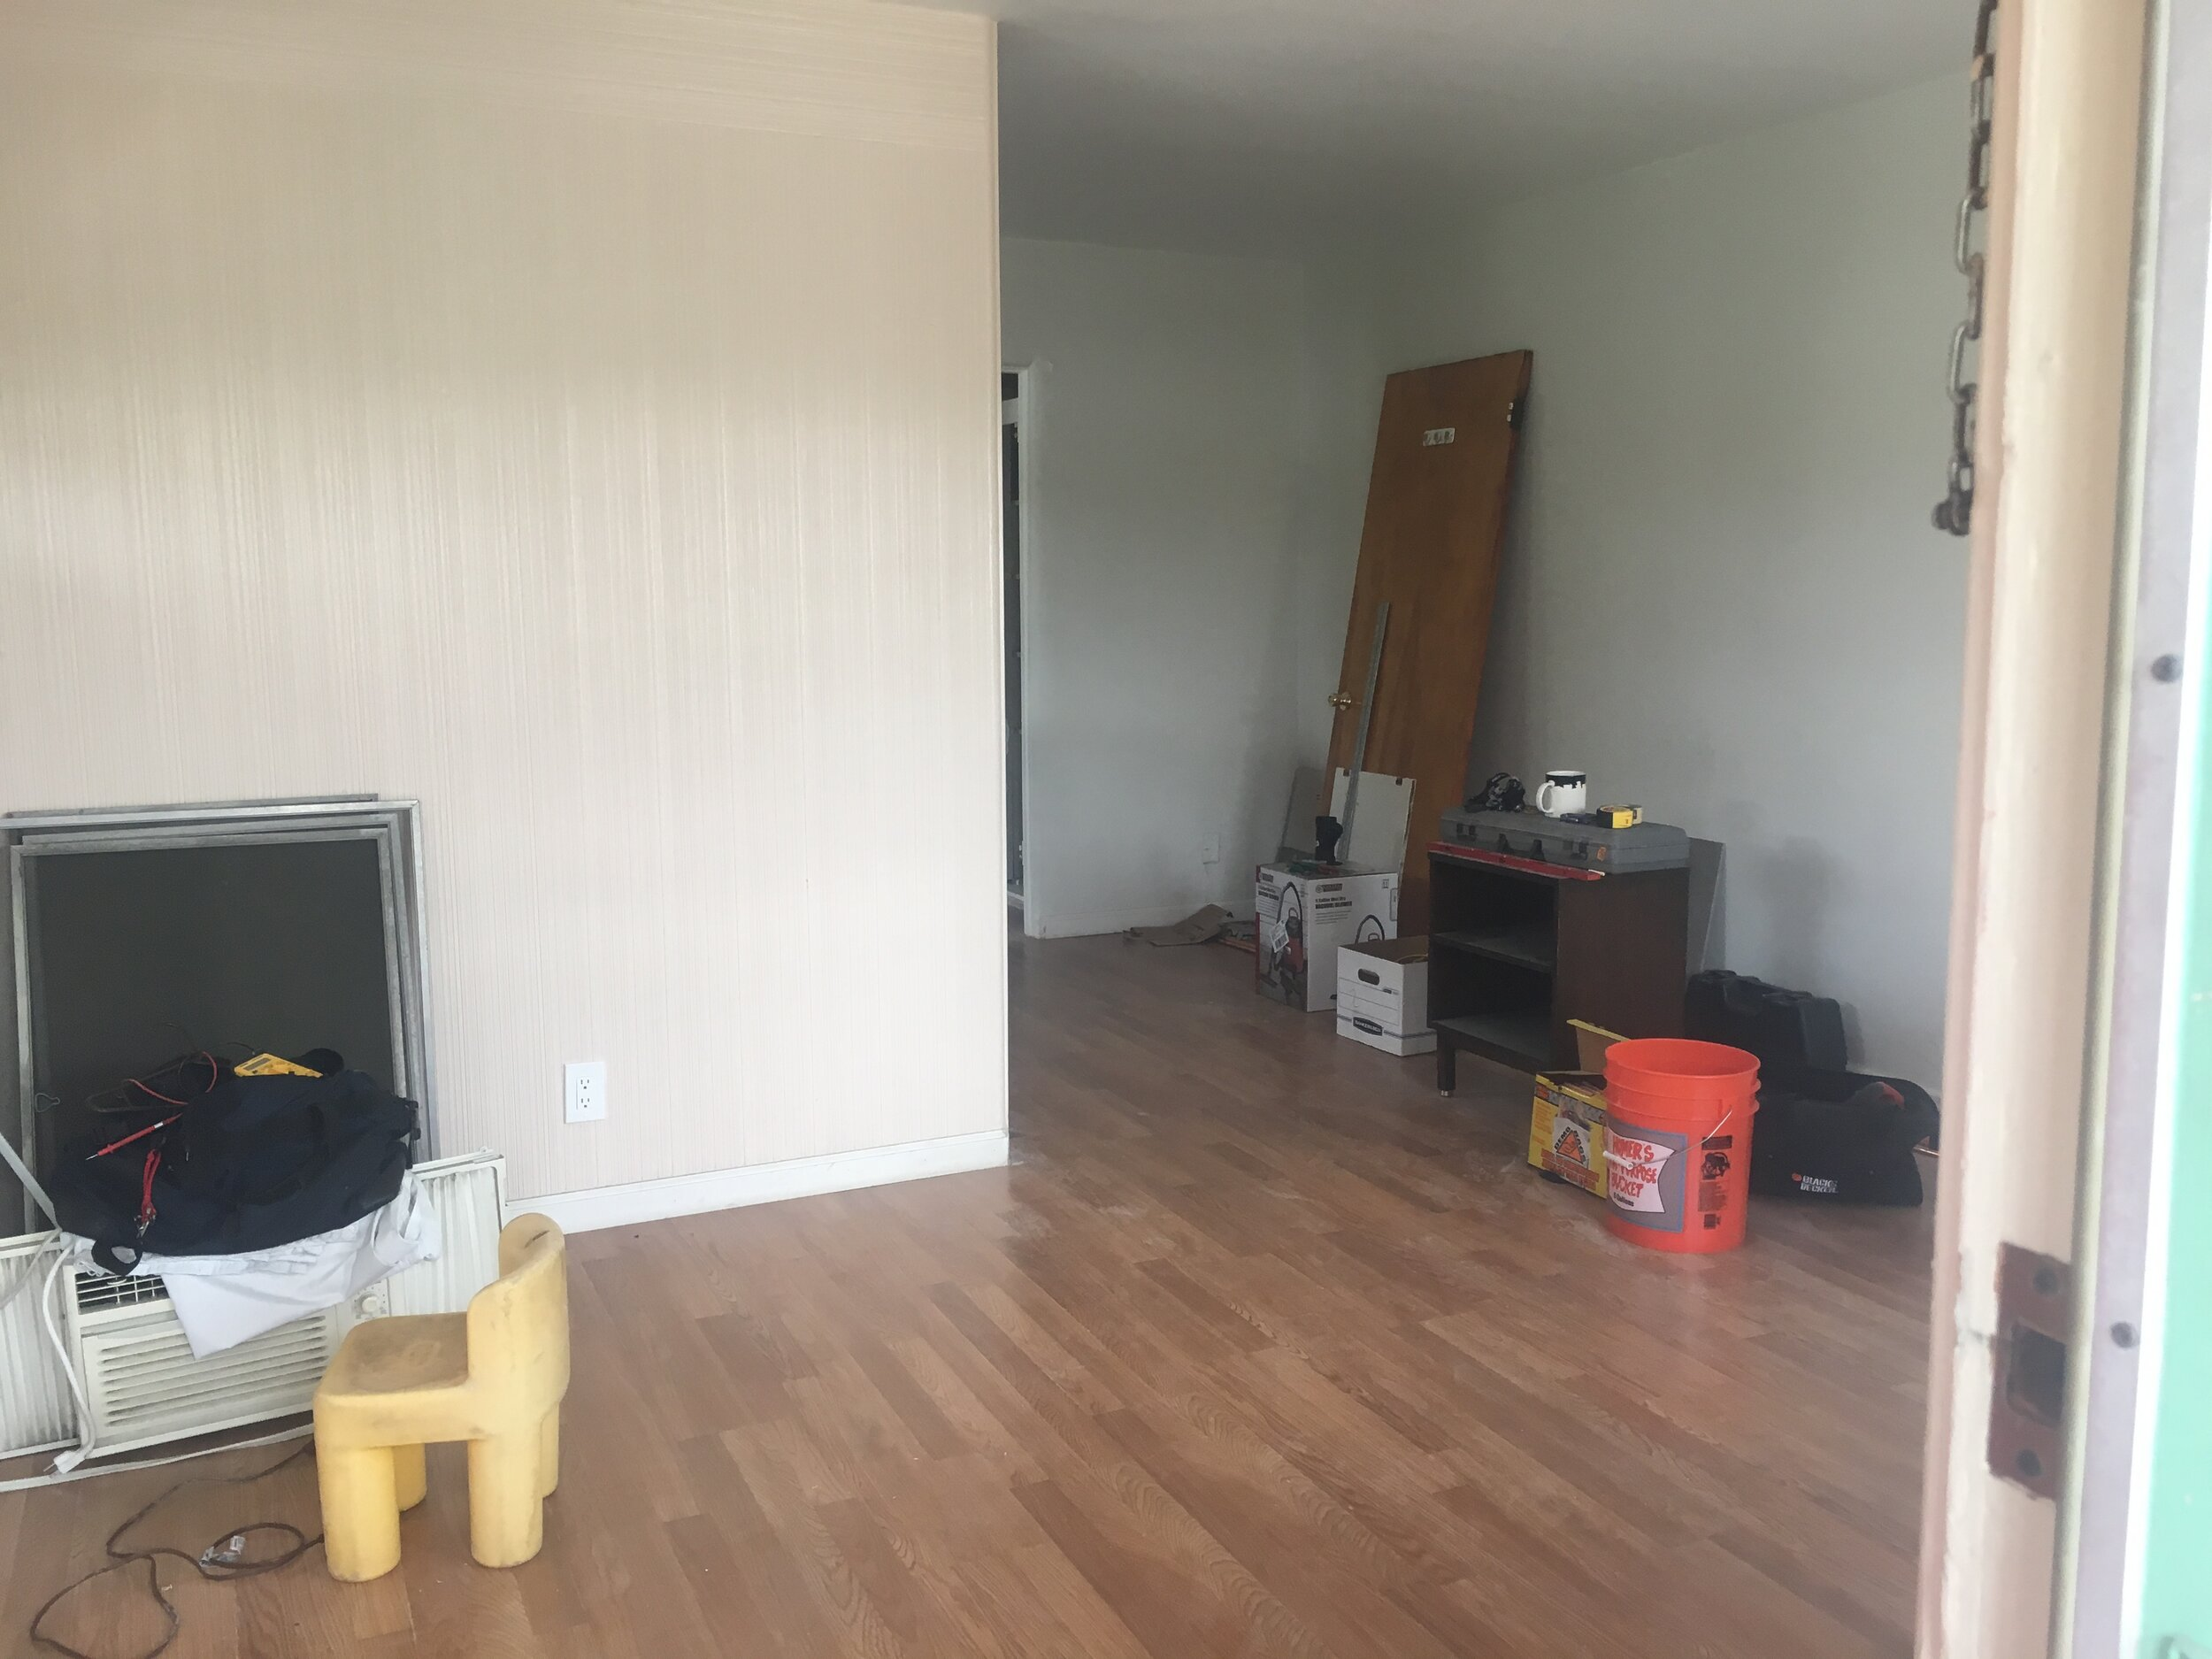 Before: A wall separated the living room and the kitchen